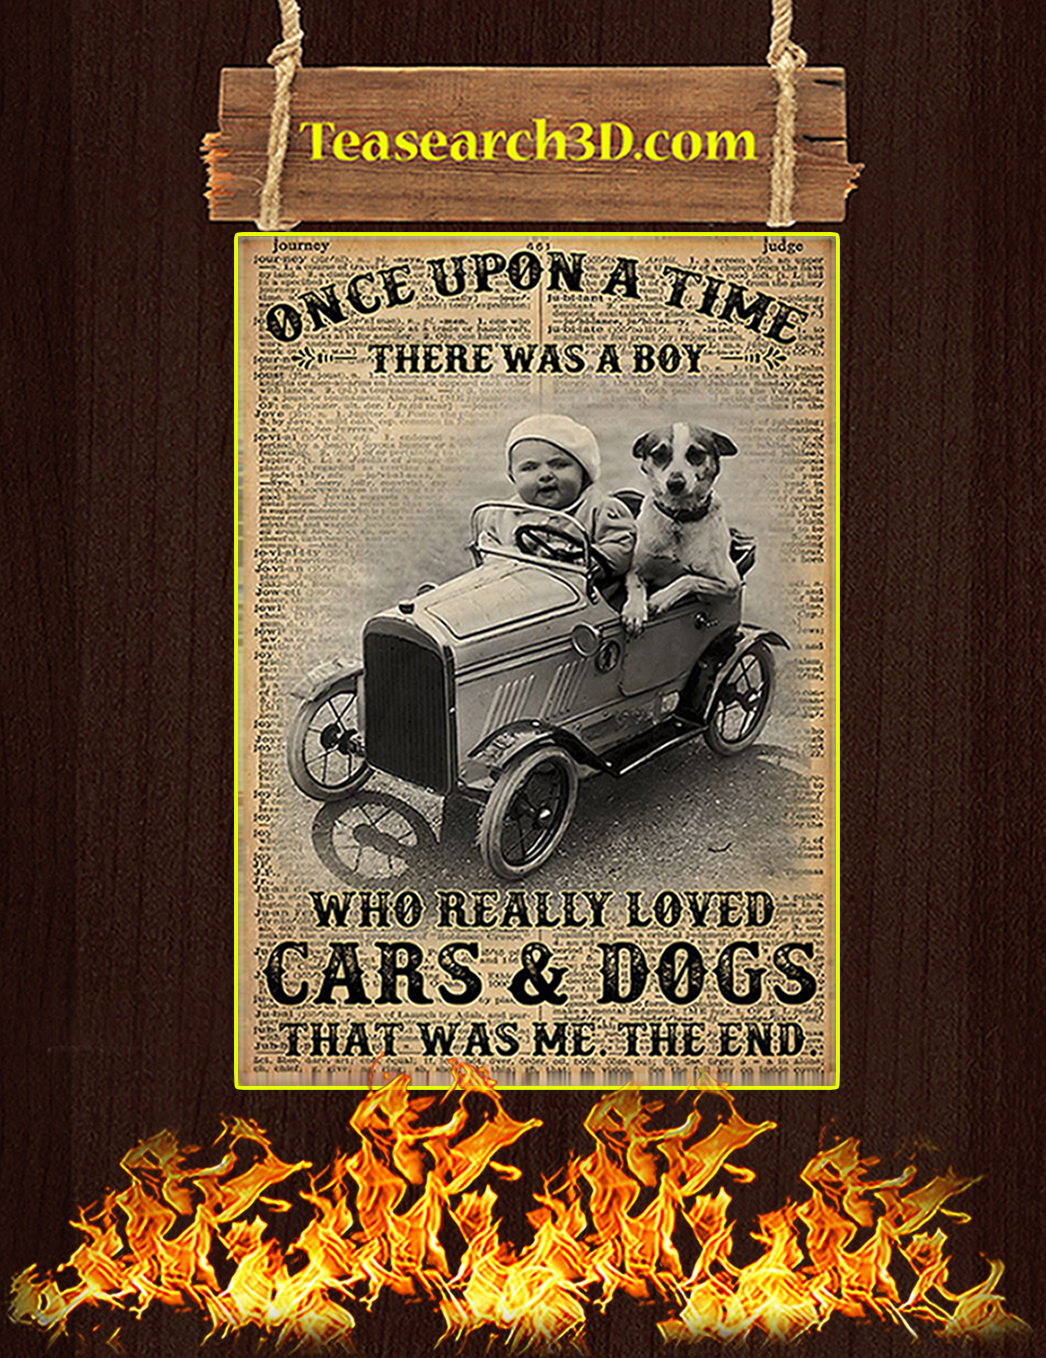 Once upon a time there was a boy who really loved cars and dogs poster A1